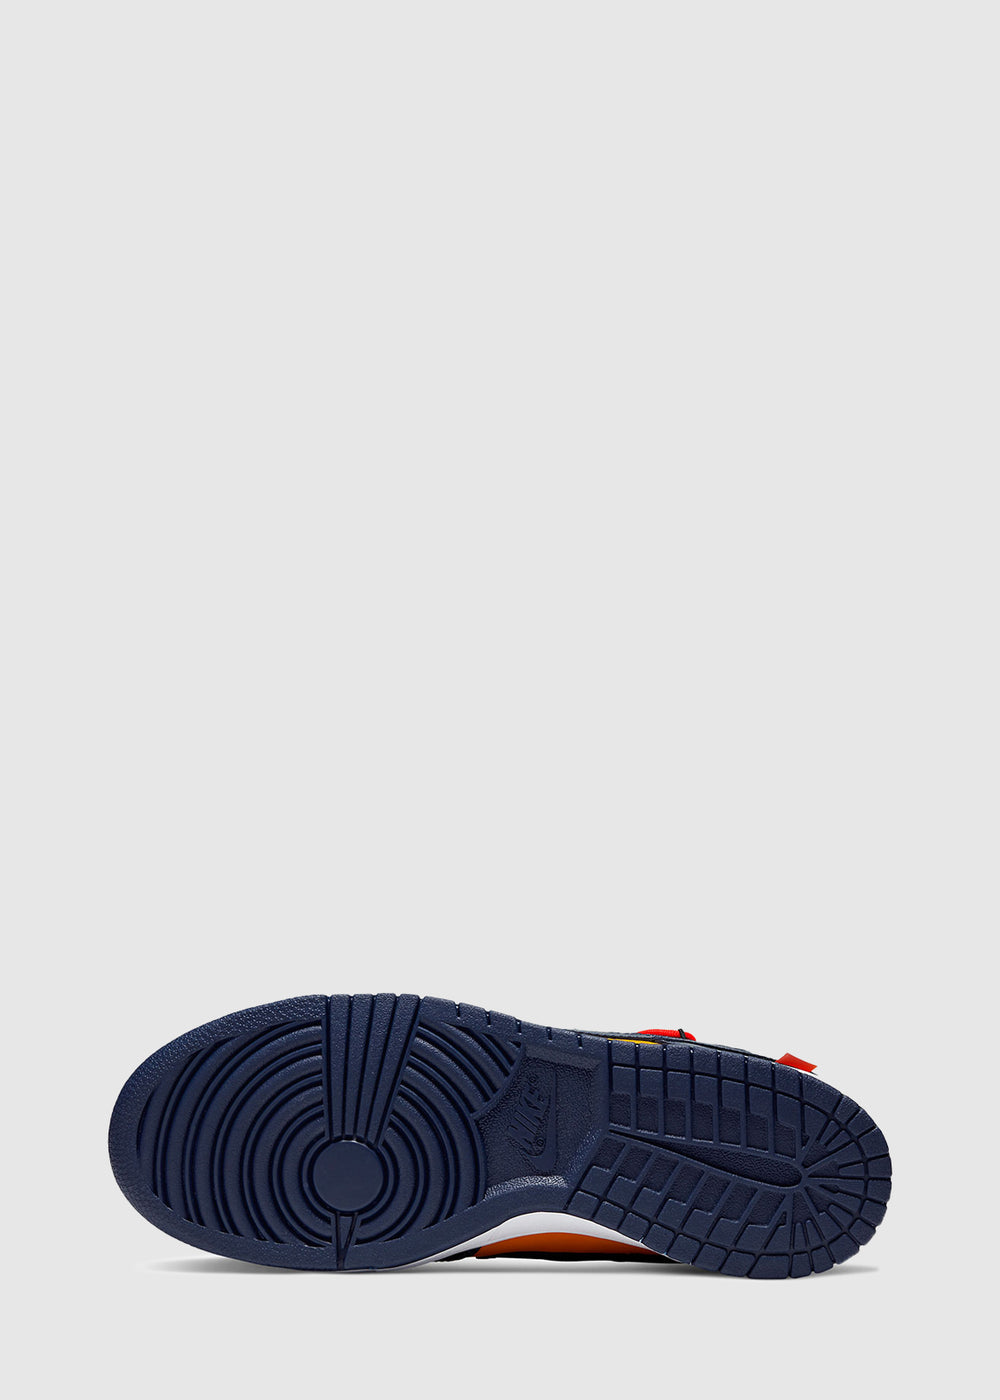 nike-x-off-white-dunk-low-navy-4